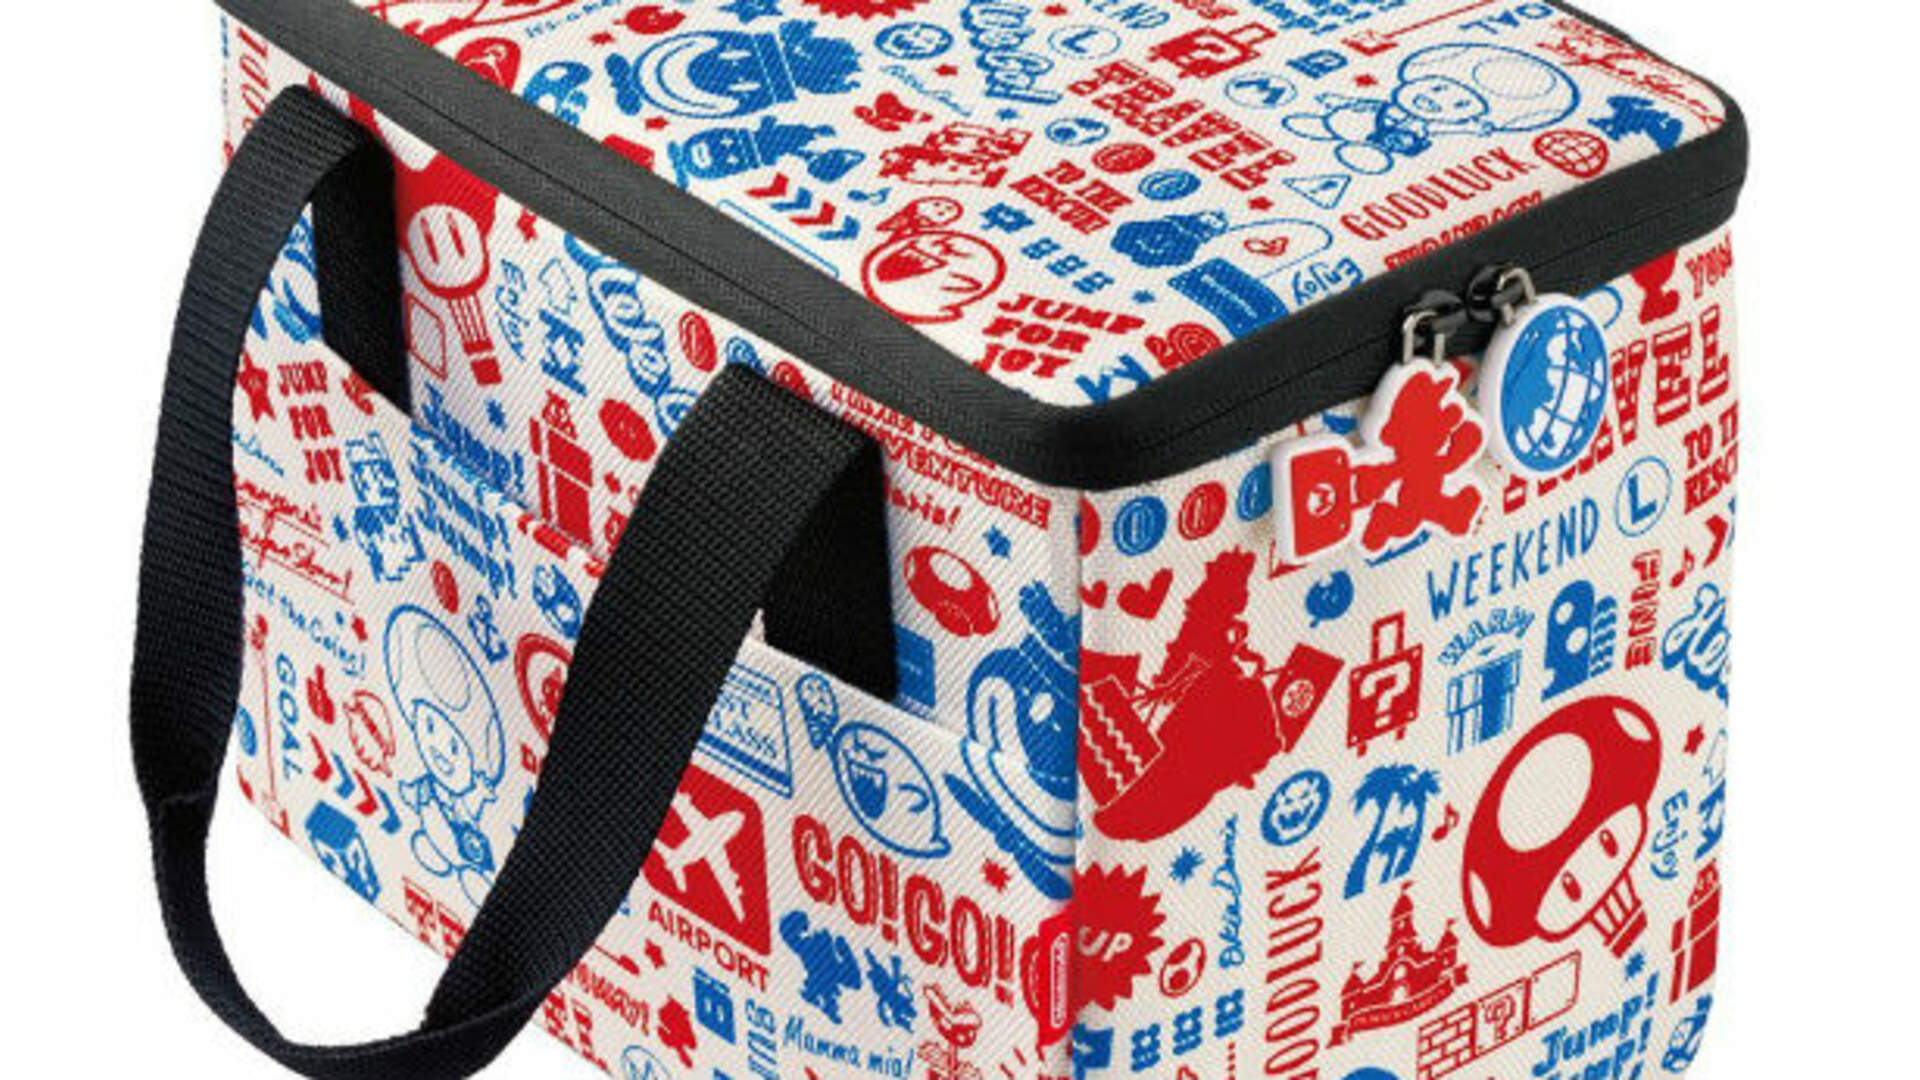 This Cool Super Mario Odyssey Switch Bag Can Hold Your System or Your Lunch